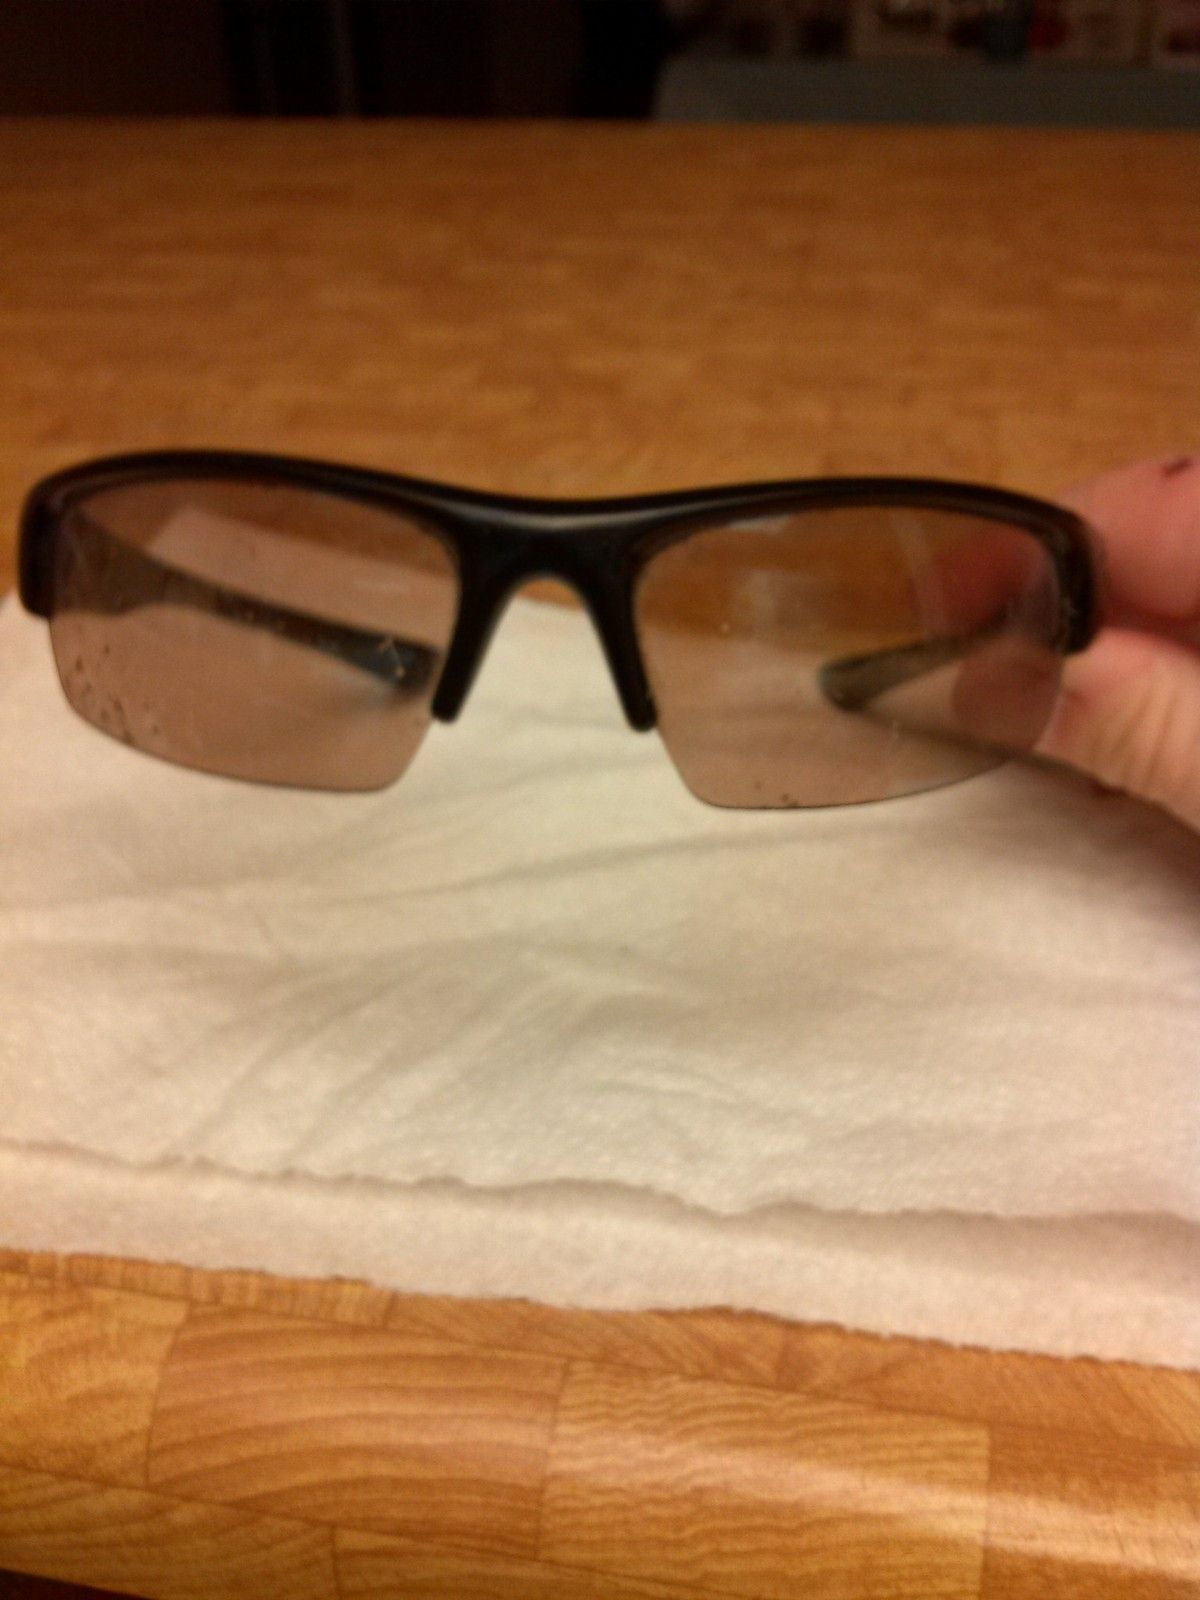 Need Help Identifying these frames so i can get new lenses - IMG_20150401_234432.jpg